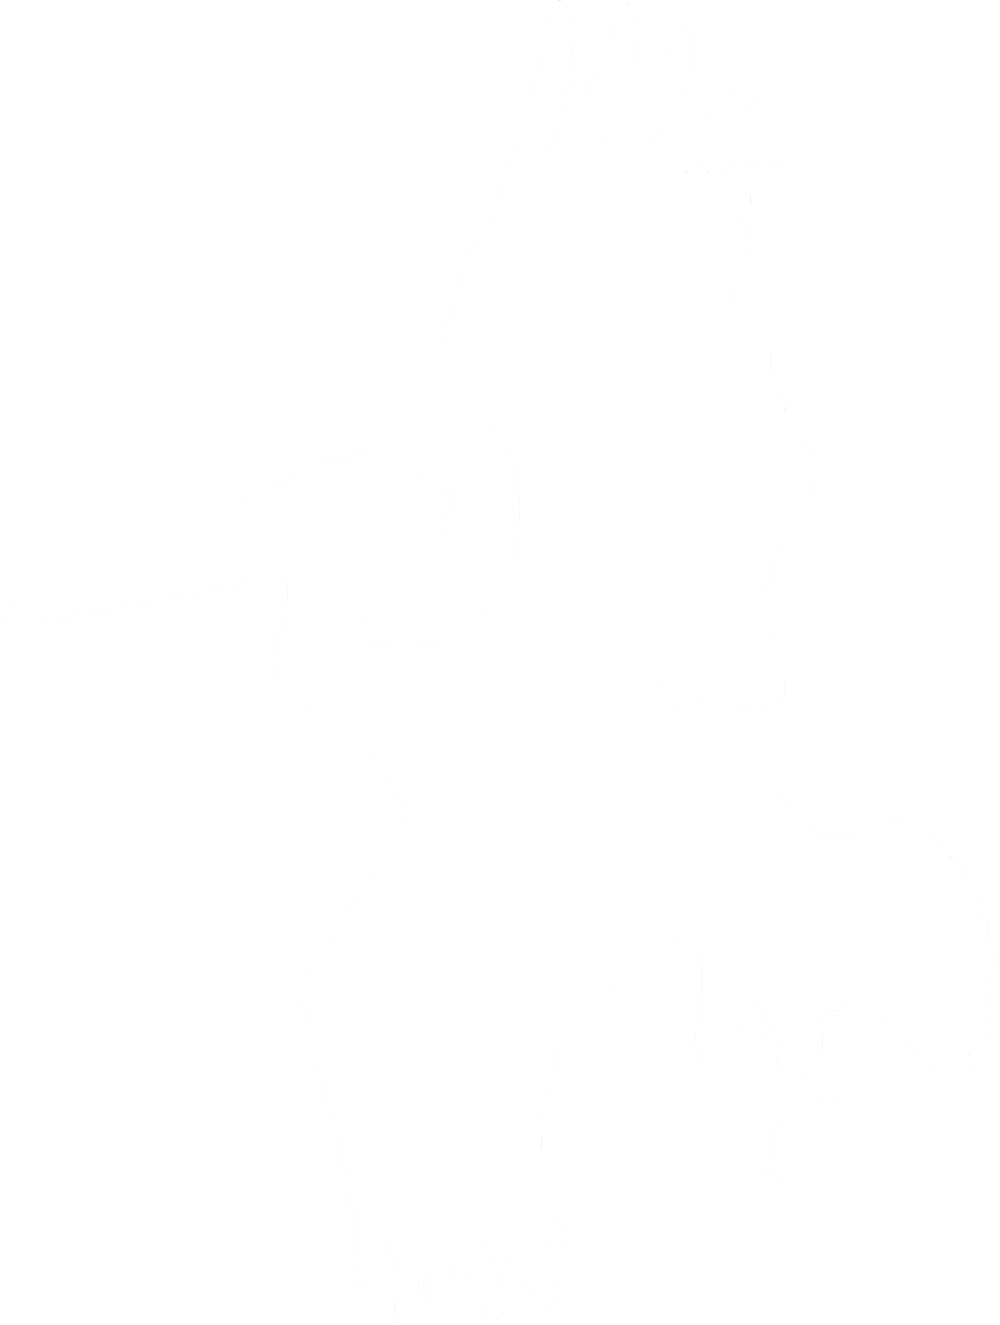 White pelican silhouette against a dark green background